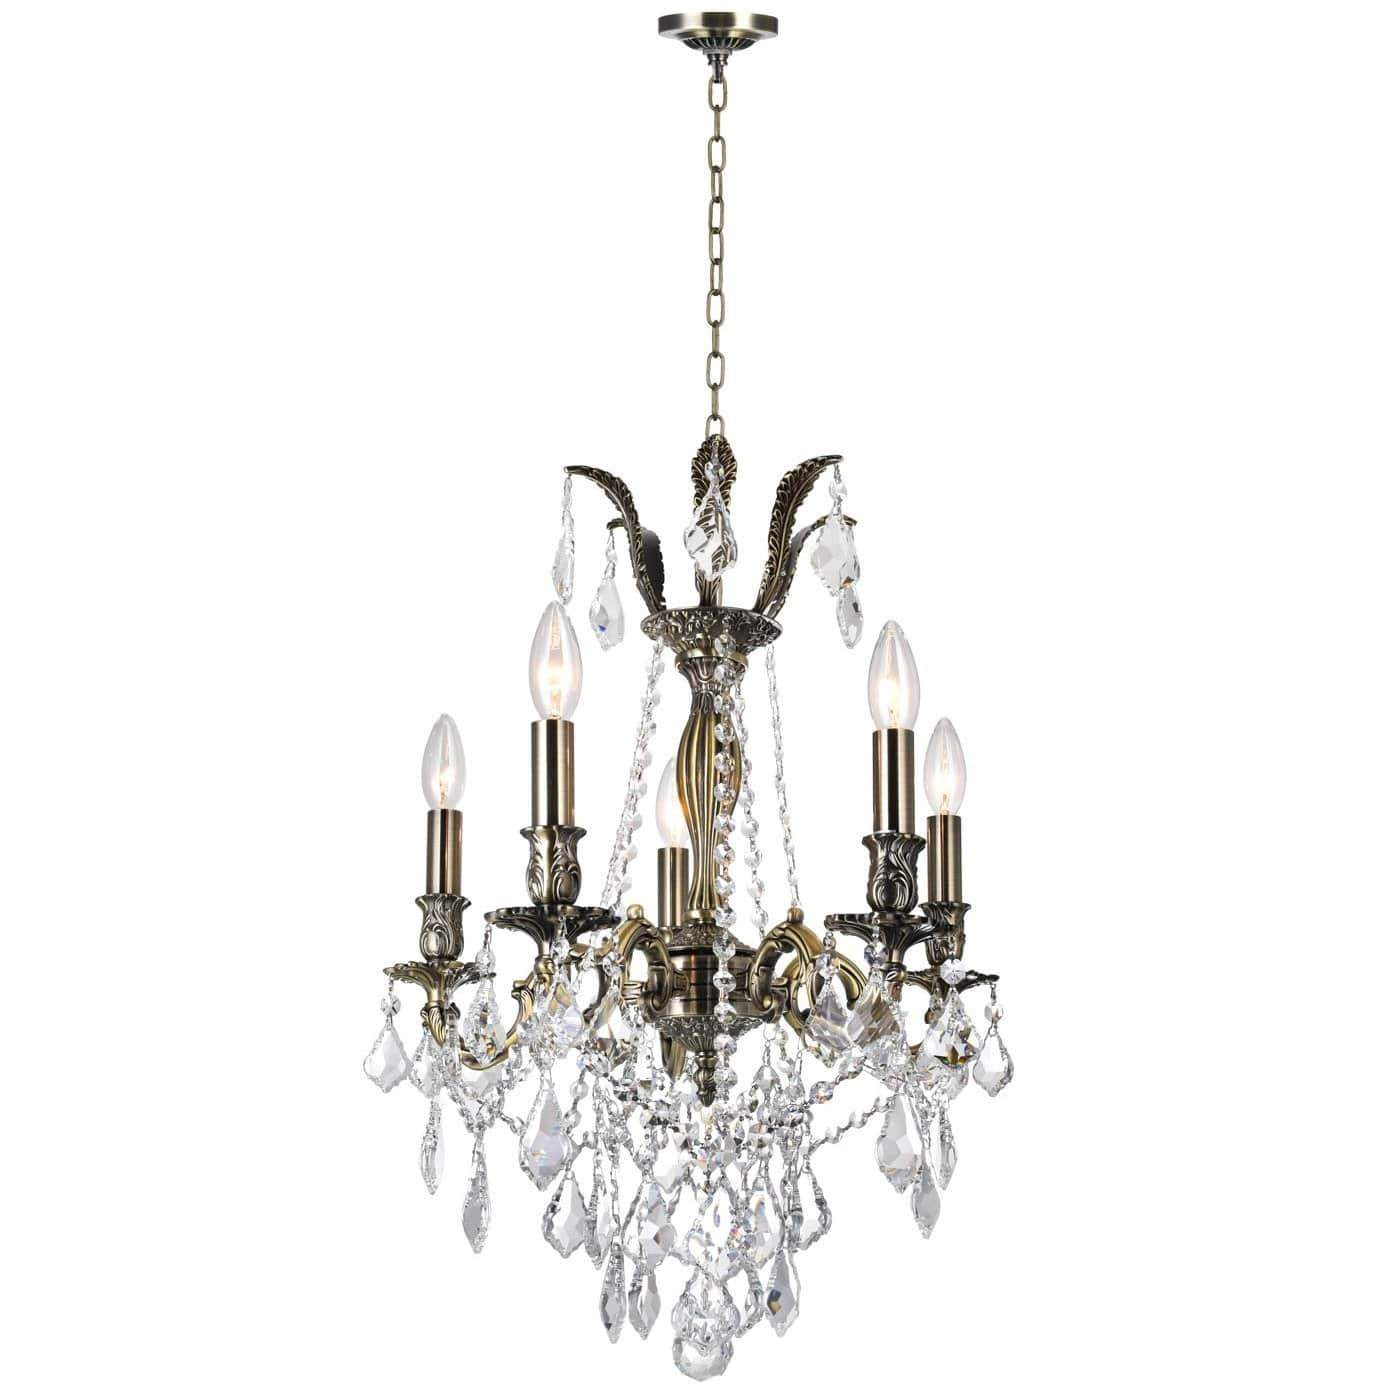 CWI Lighting Chandeliers Antique Brass / K9 Clear Brass 5 Light Up Chandelier with Antique Brass finish by CWI Lighting 2034P18AB-5